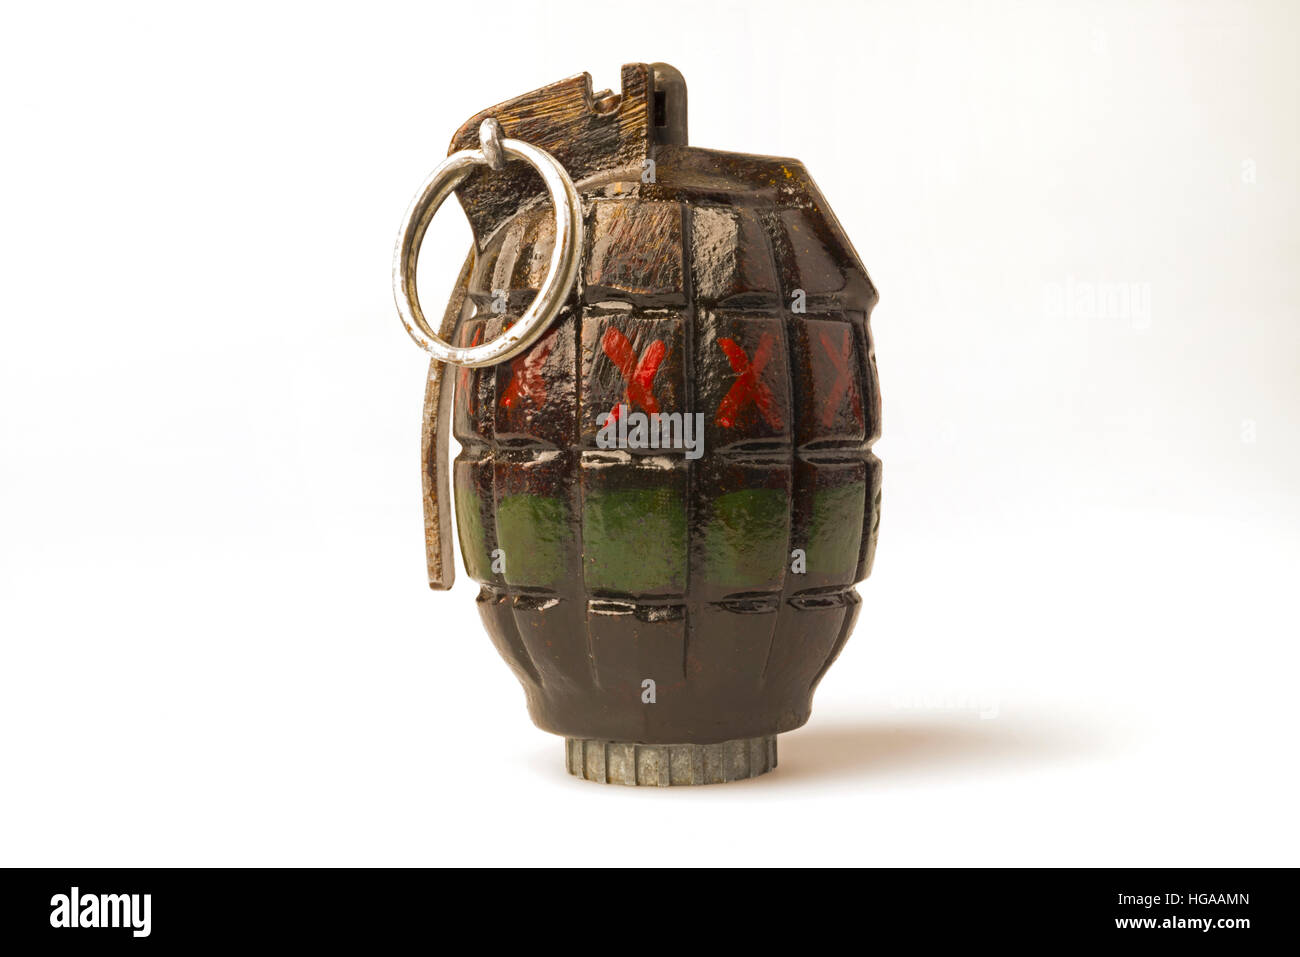 A hand grenade. This type of grenade is properly known as a Mills Bomb. - Stock Image